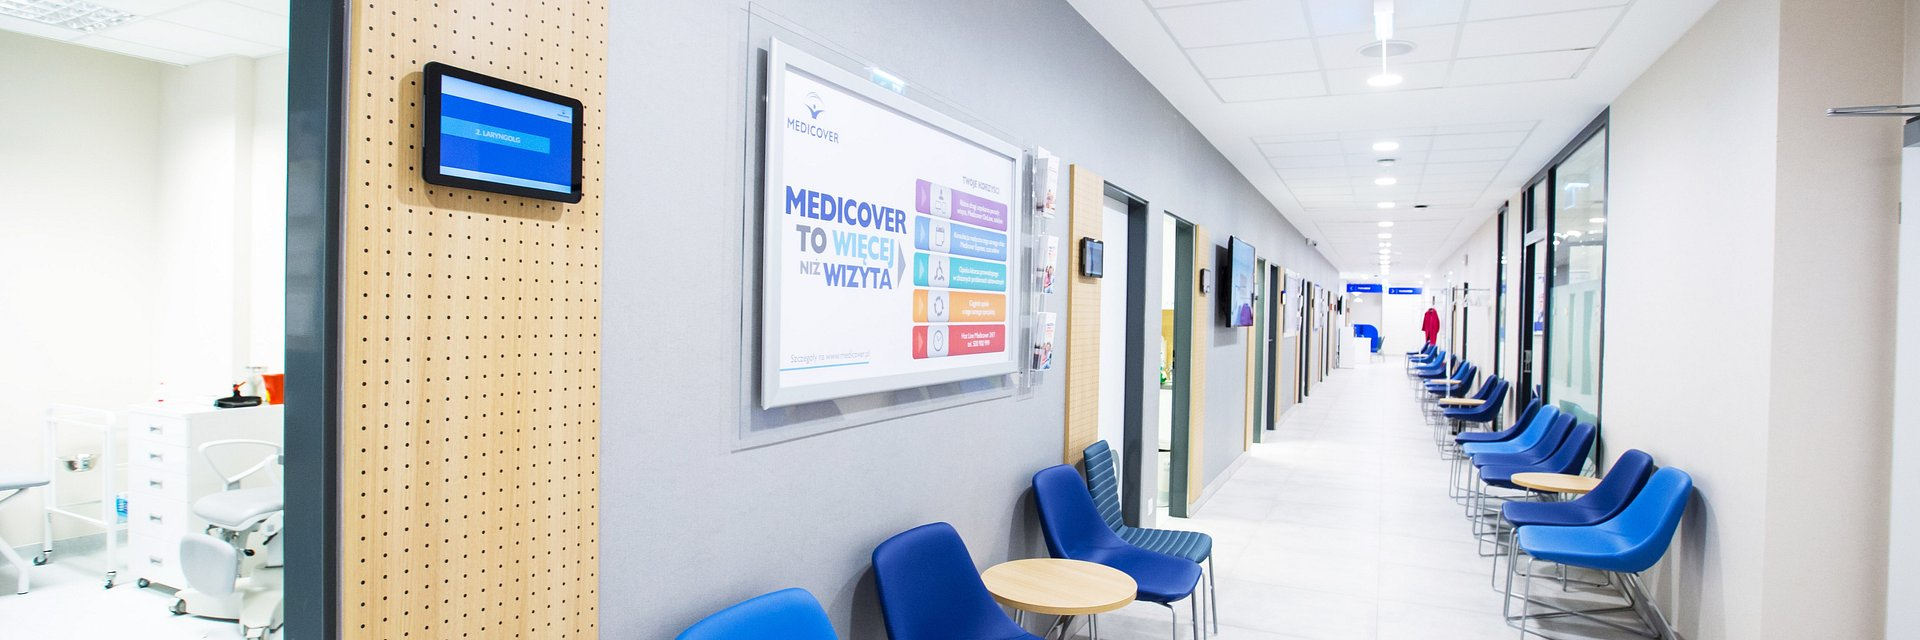 Medicover Poland opens its first medical centre in Leszno